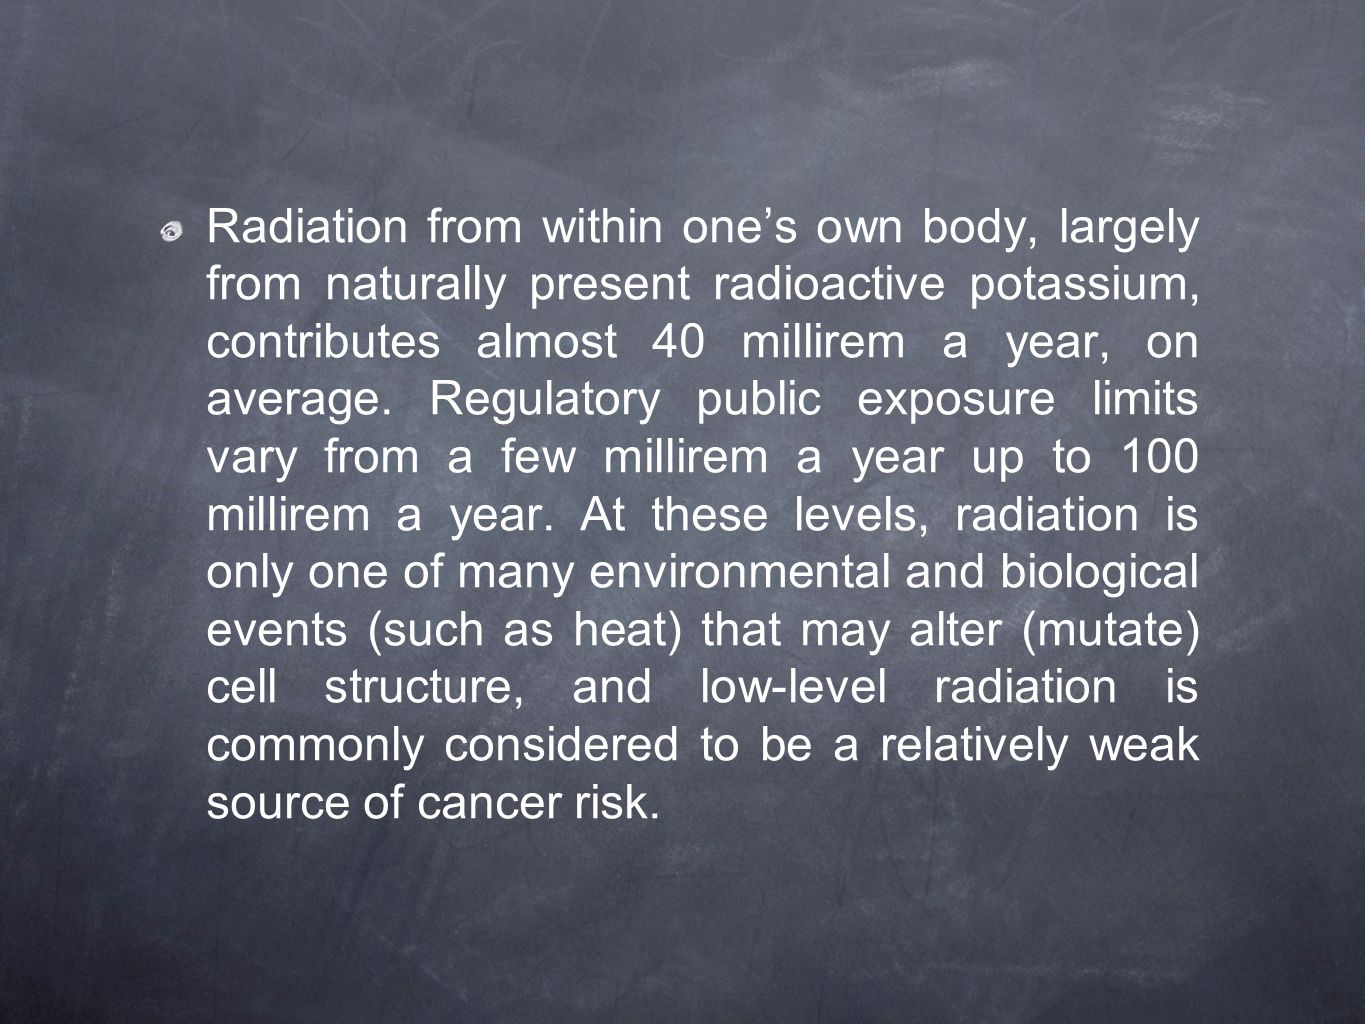 Radiation from within one's own body, largely from naturally present radioactive potassium, contributes almost 40 millirem a year, on average. Regulat